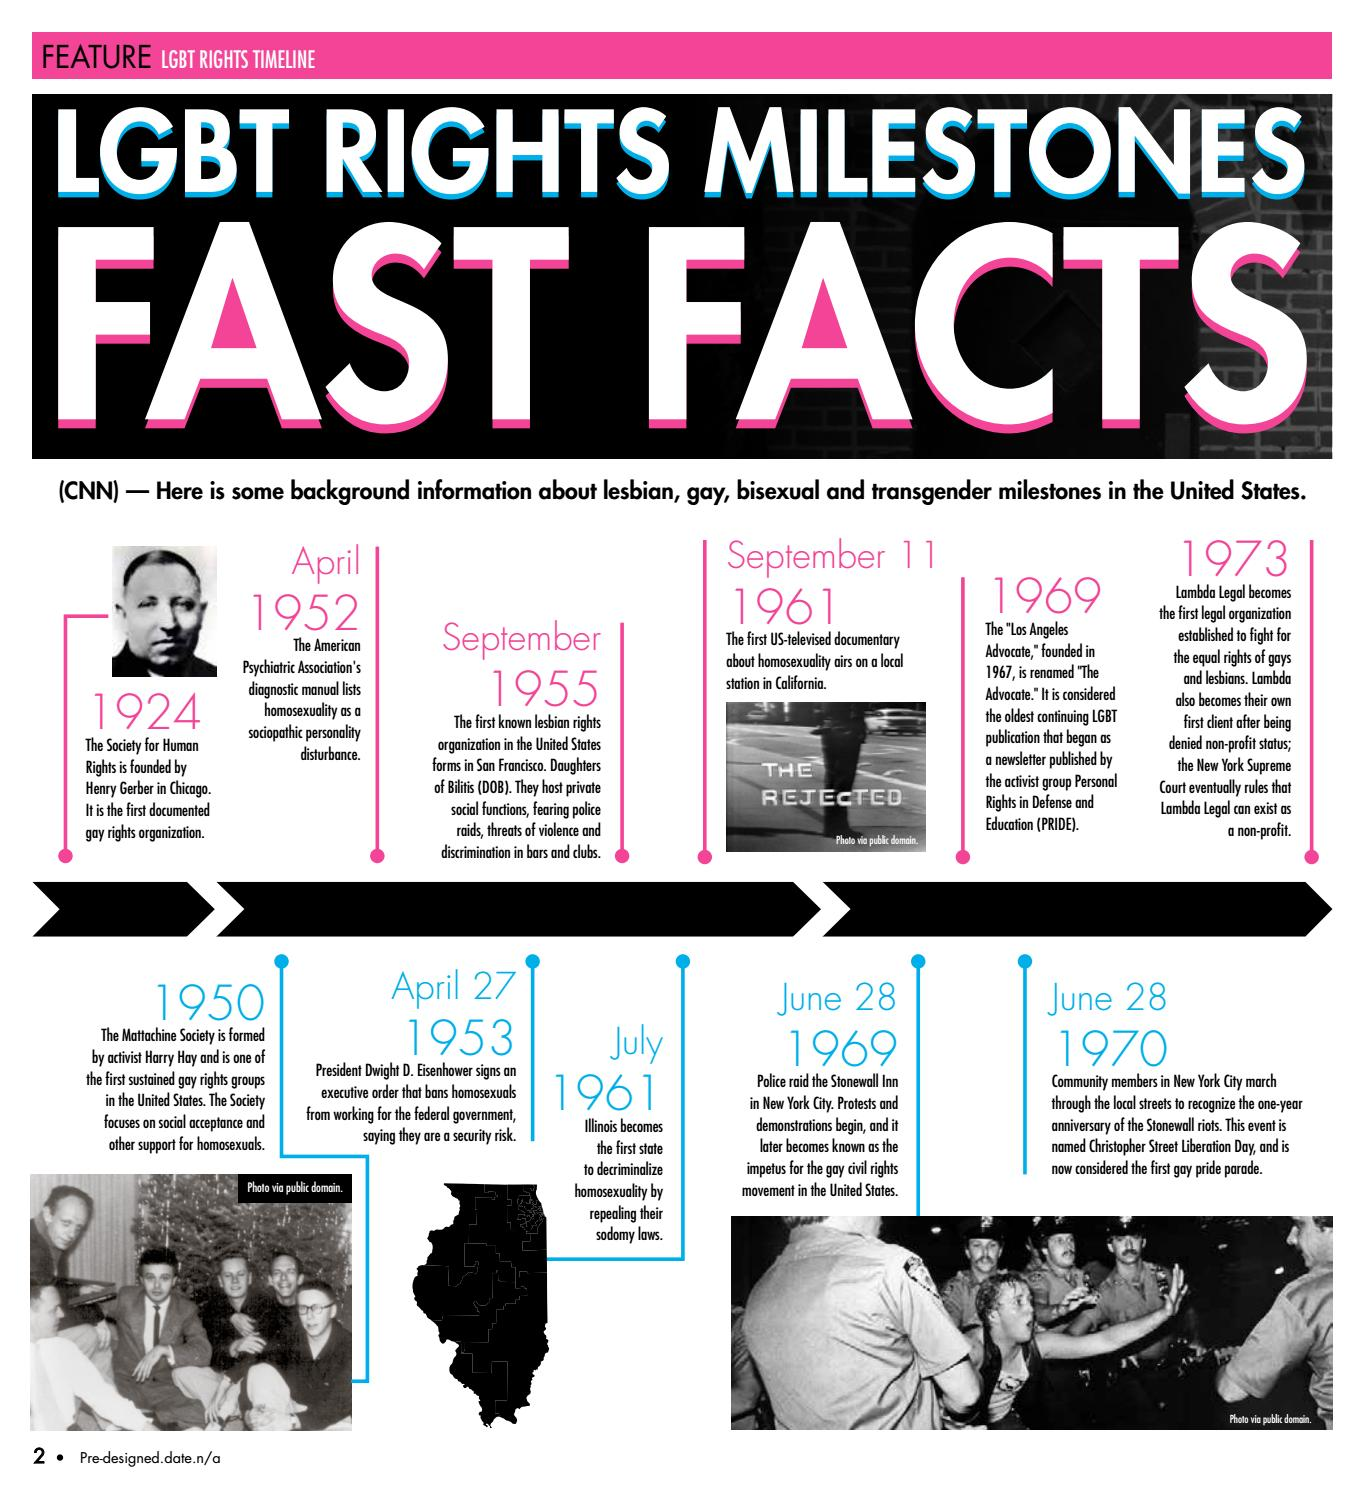 Gay rights timeline